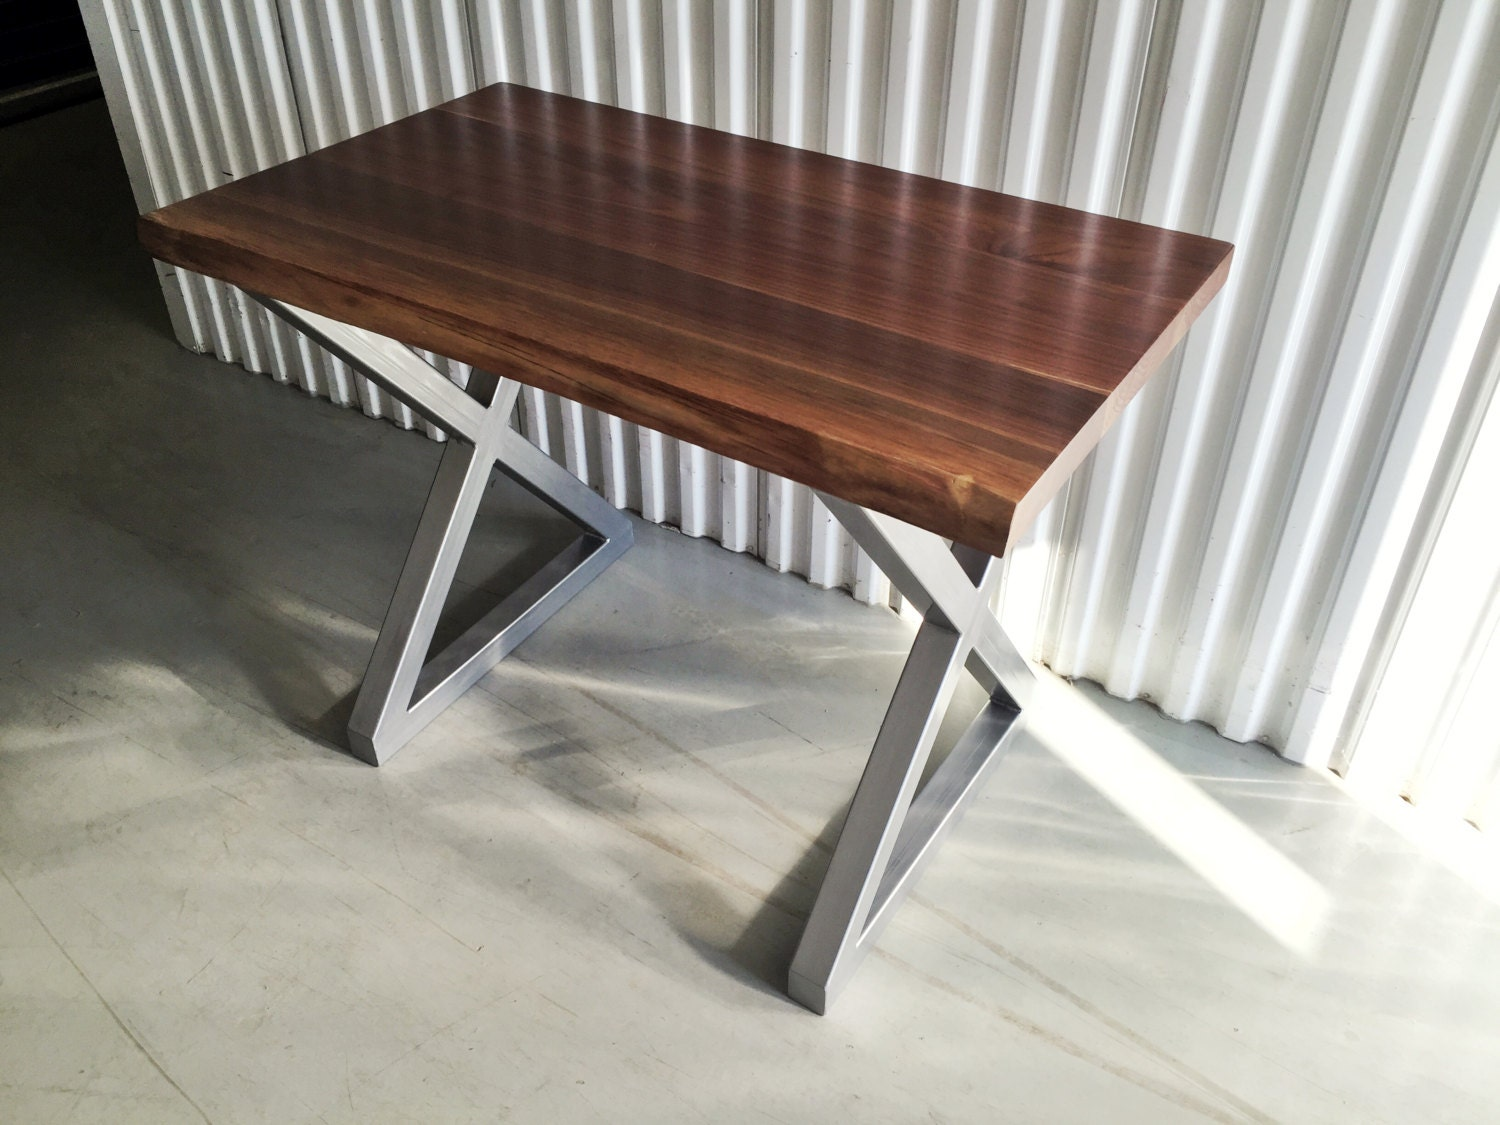 X frame steel metal dining table legs desk legs height for Dining table frame